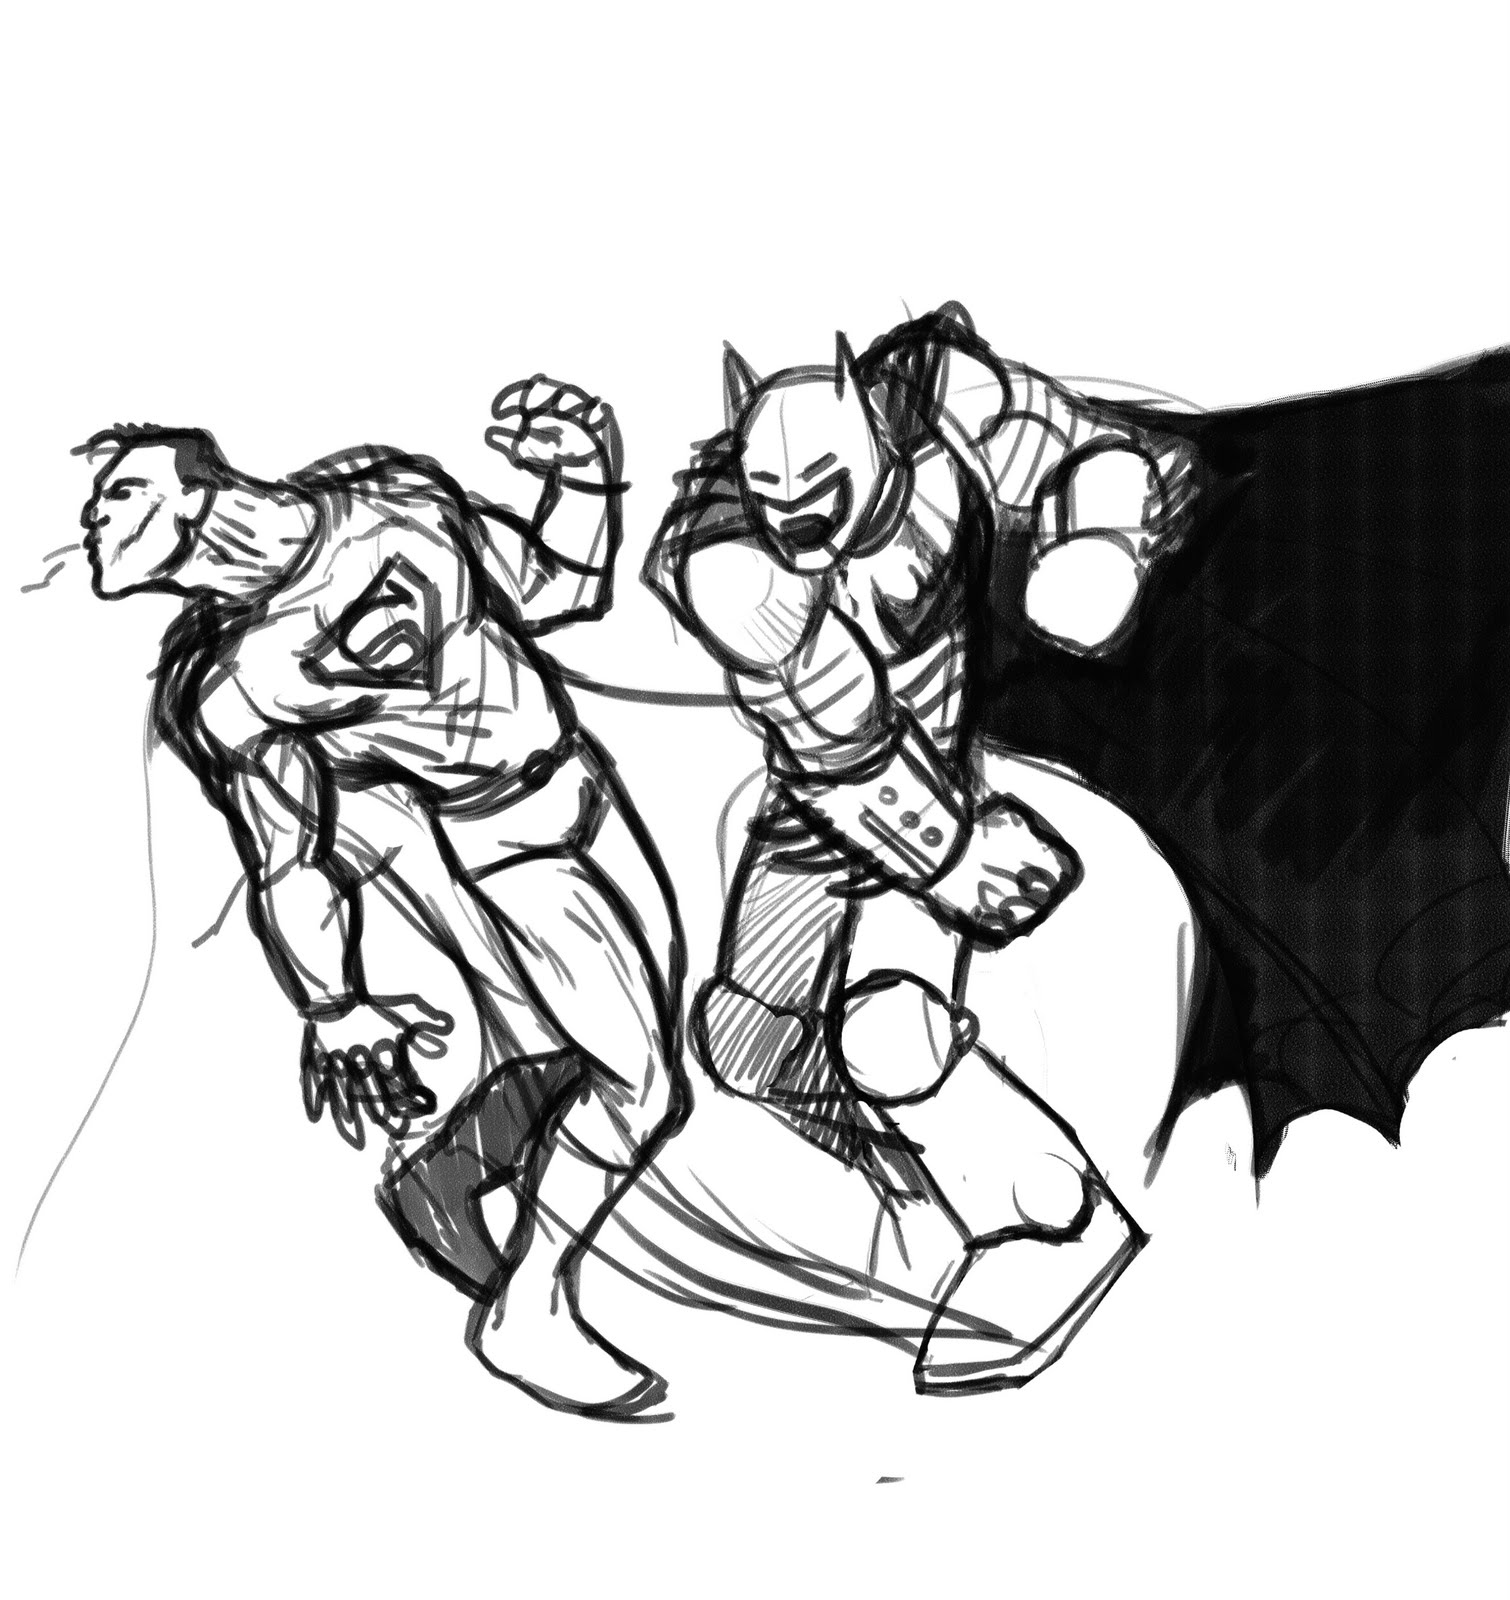 EL DIBUJANTE AFICIONADO: BATMAN VS SUPERMAN SKETCH